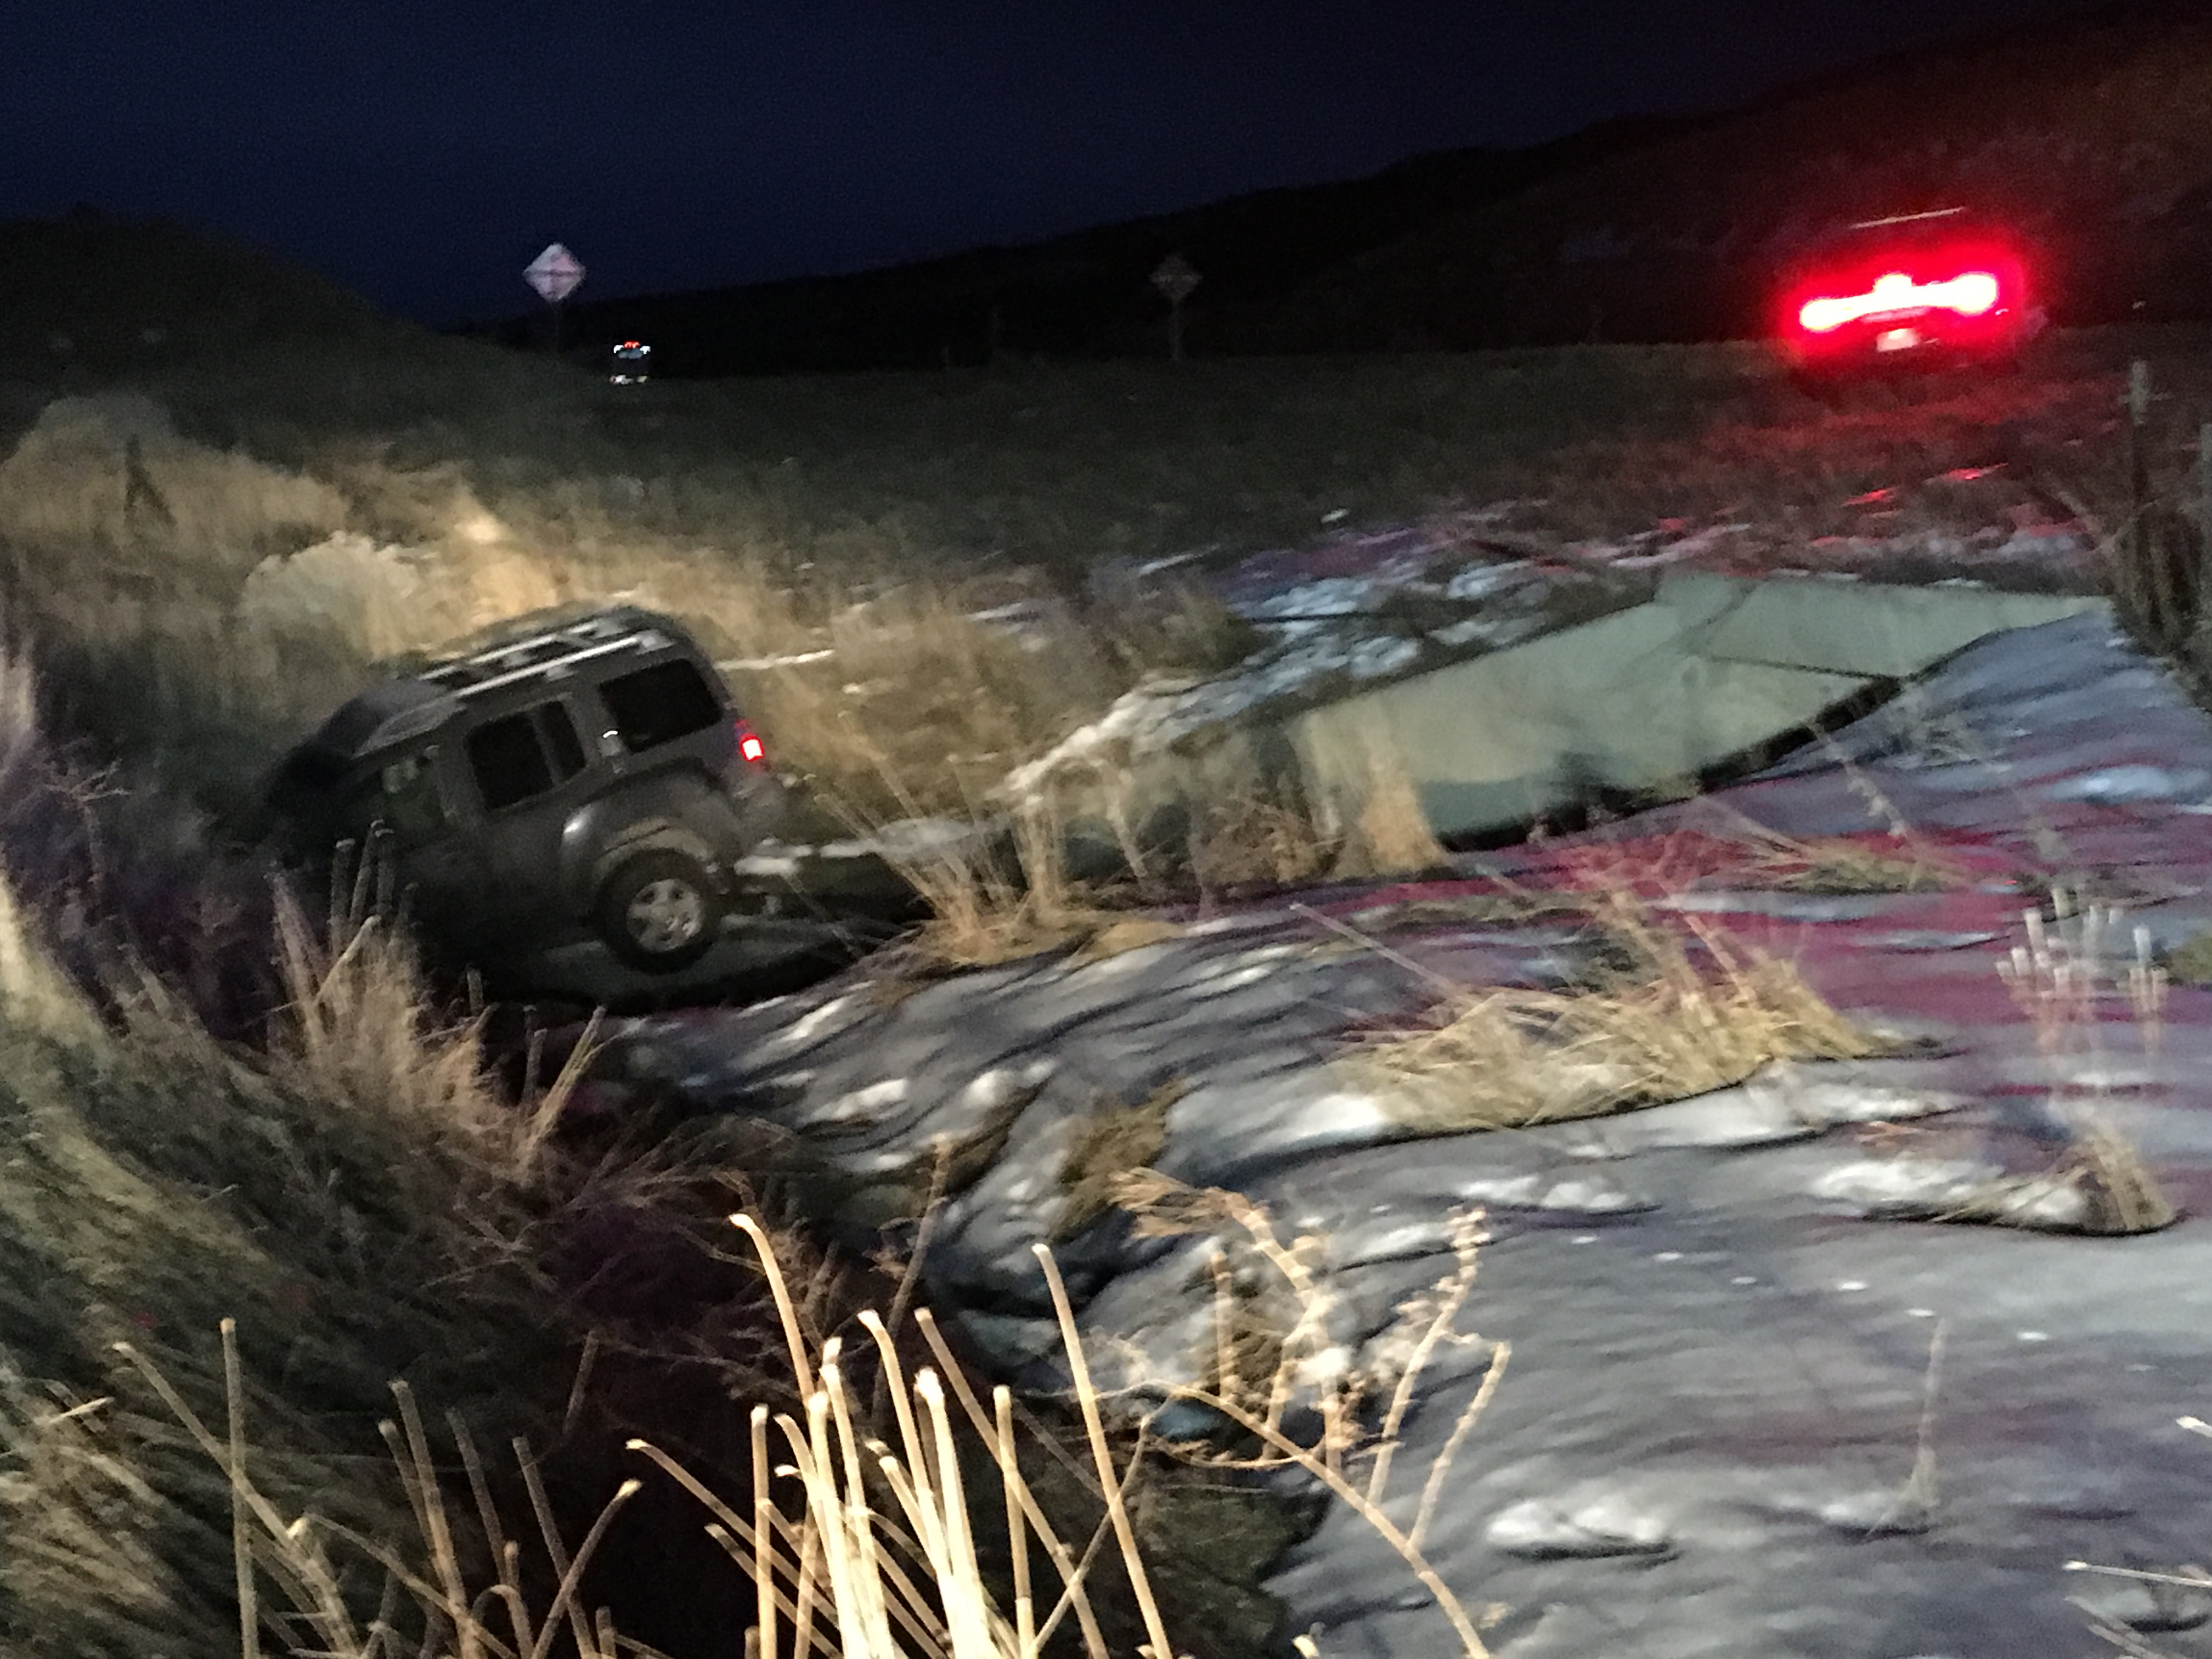 Cedar City Police were involved in a high-speed chase on Interstate 15 Friday morning that ended when the vehicle landed in a culvert. Cedar City, Utah January 15, 2015 | Photo taken by Tracie Sullivan | Cedar City News